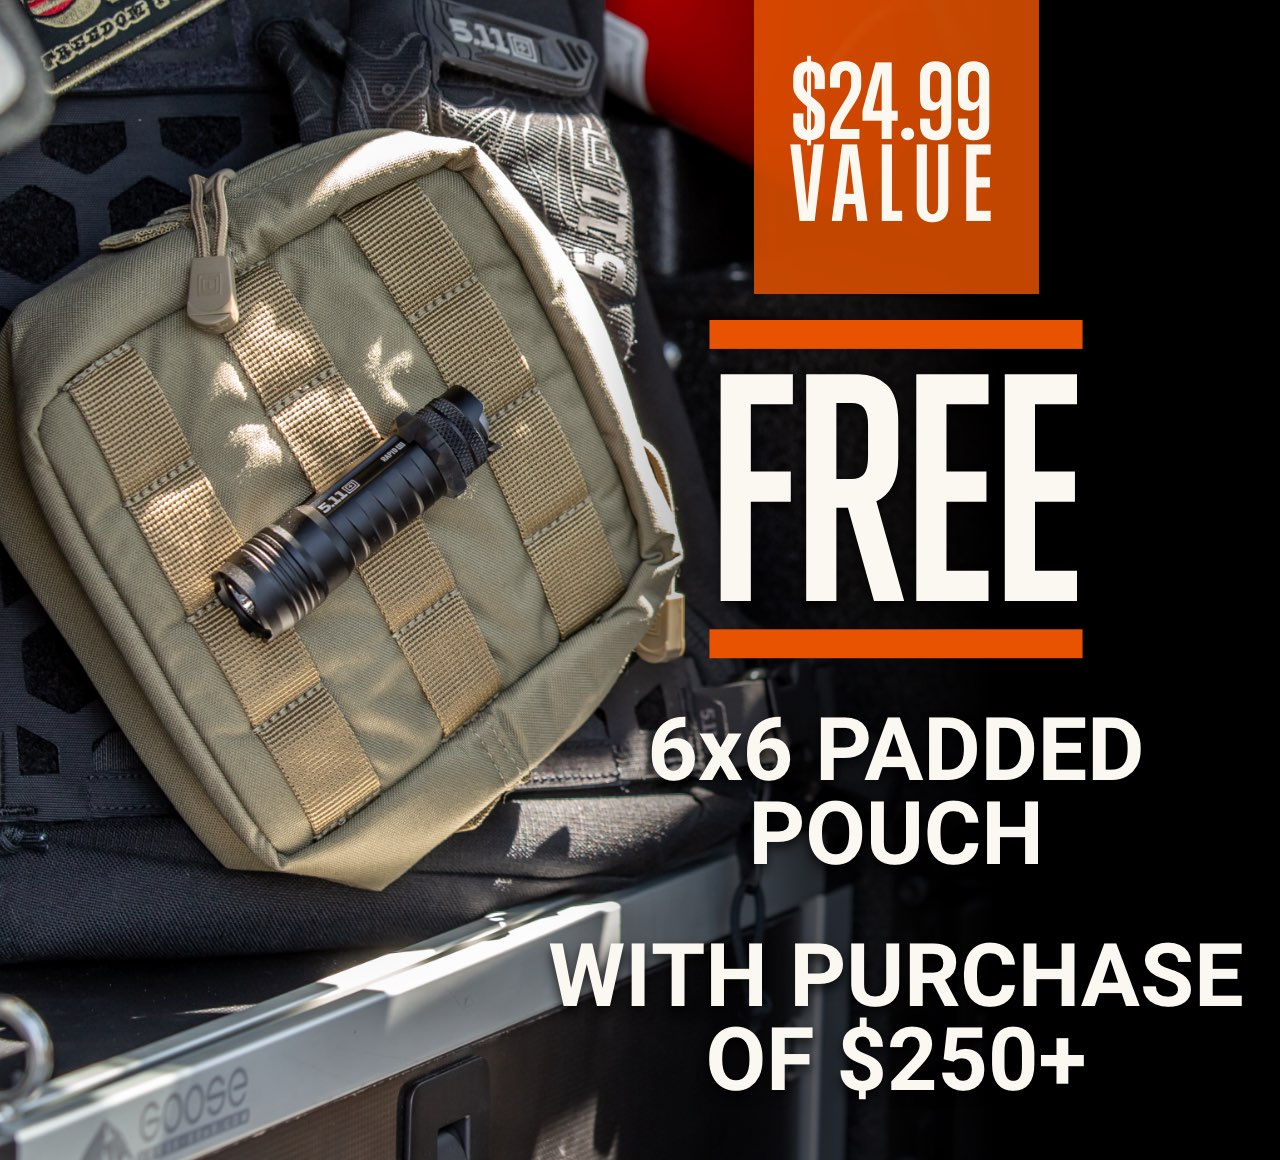 GWP 6x6 Padded Pouch with $250 Purchase